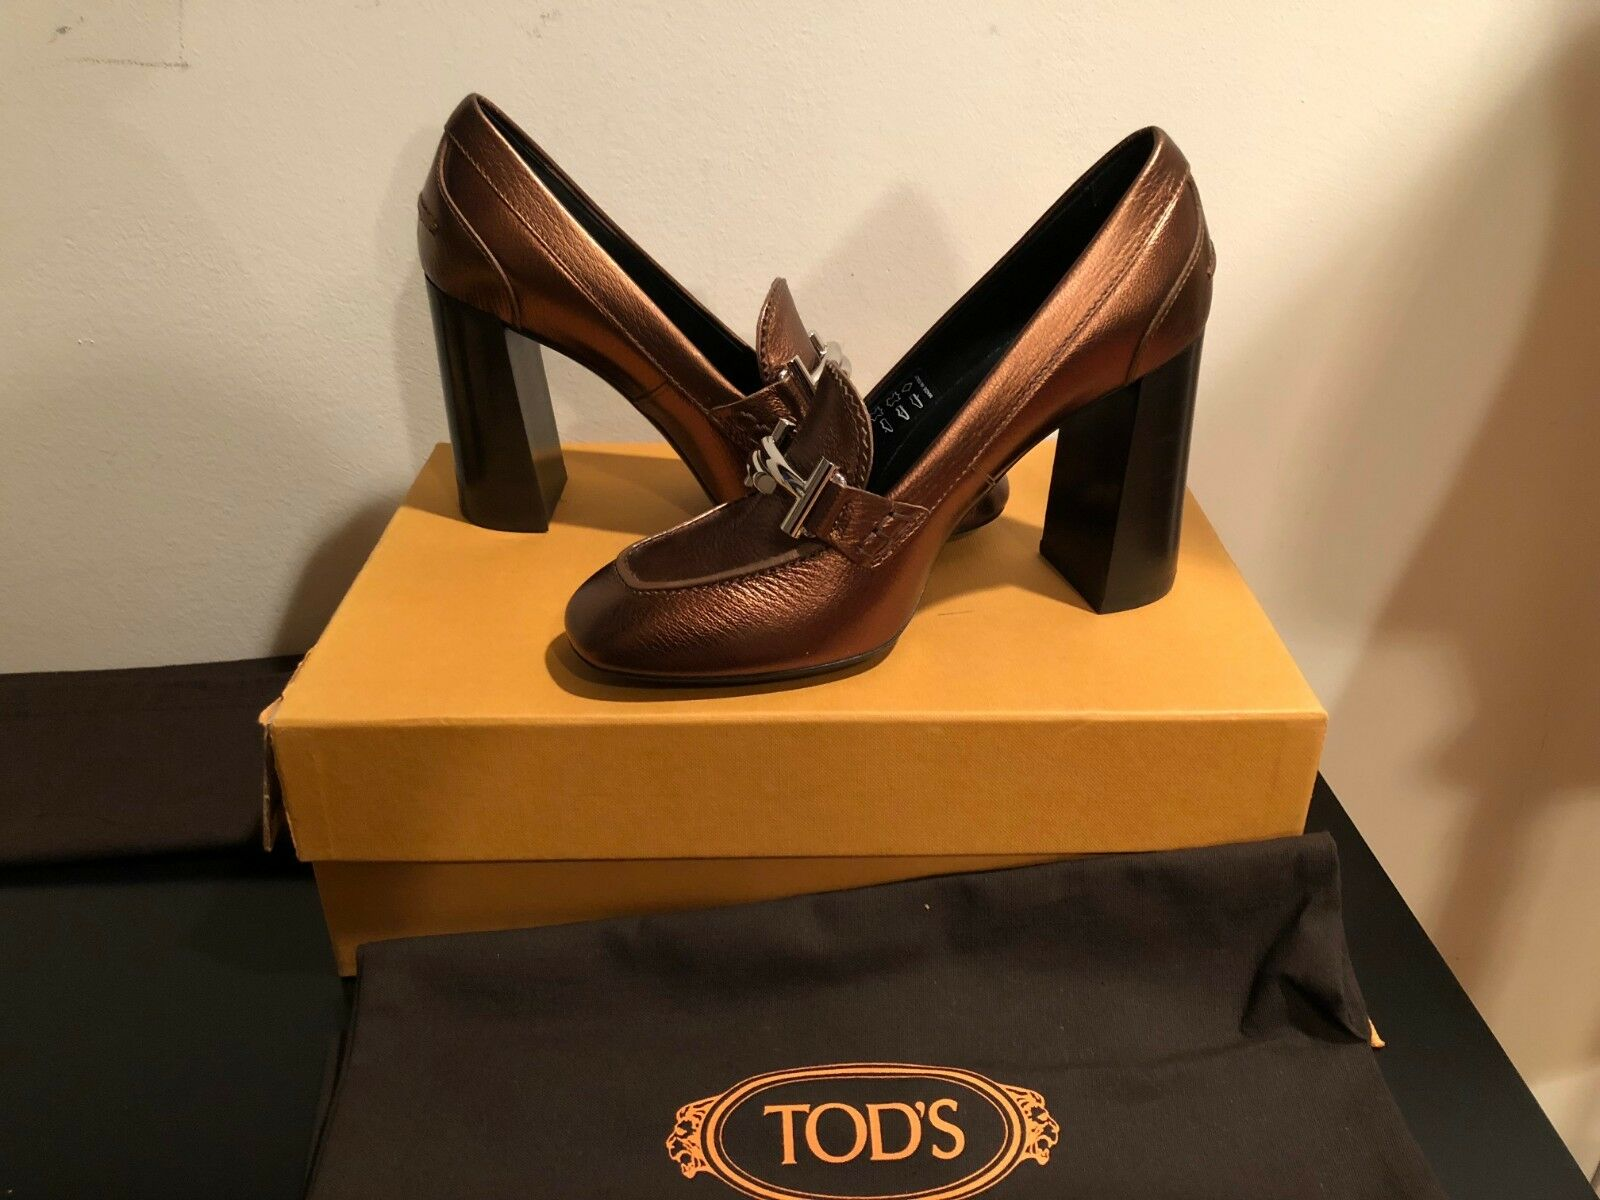 NEW TODS GOMMA T95 ZL MAXI DOPPIA HEELS SHOES BRONZE COPPER LEATHER SIZE 36.5